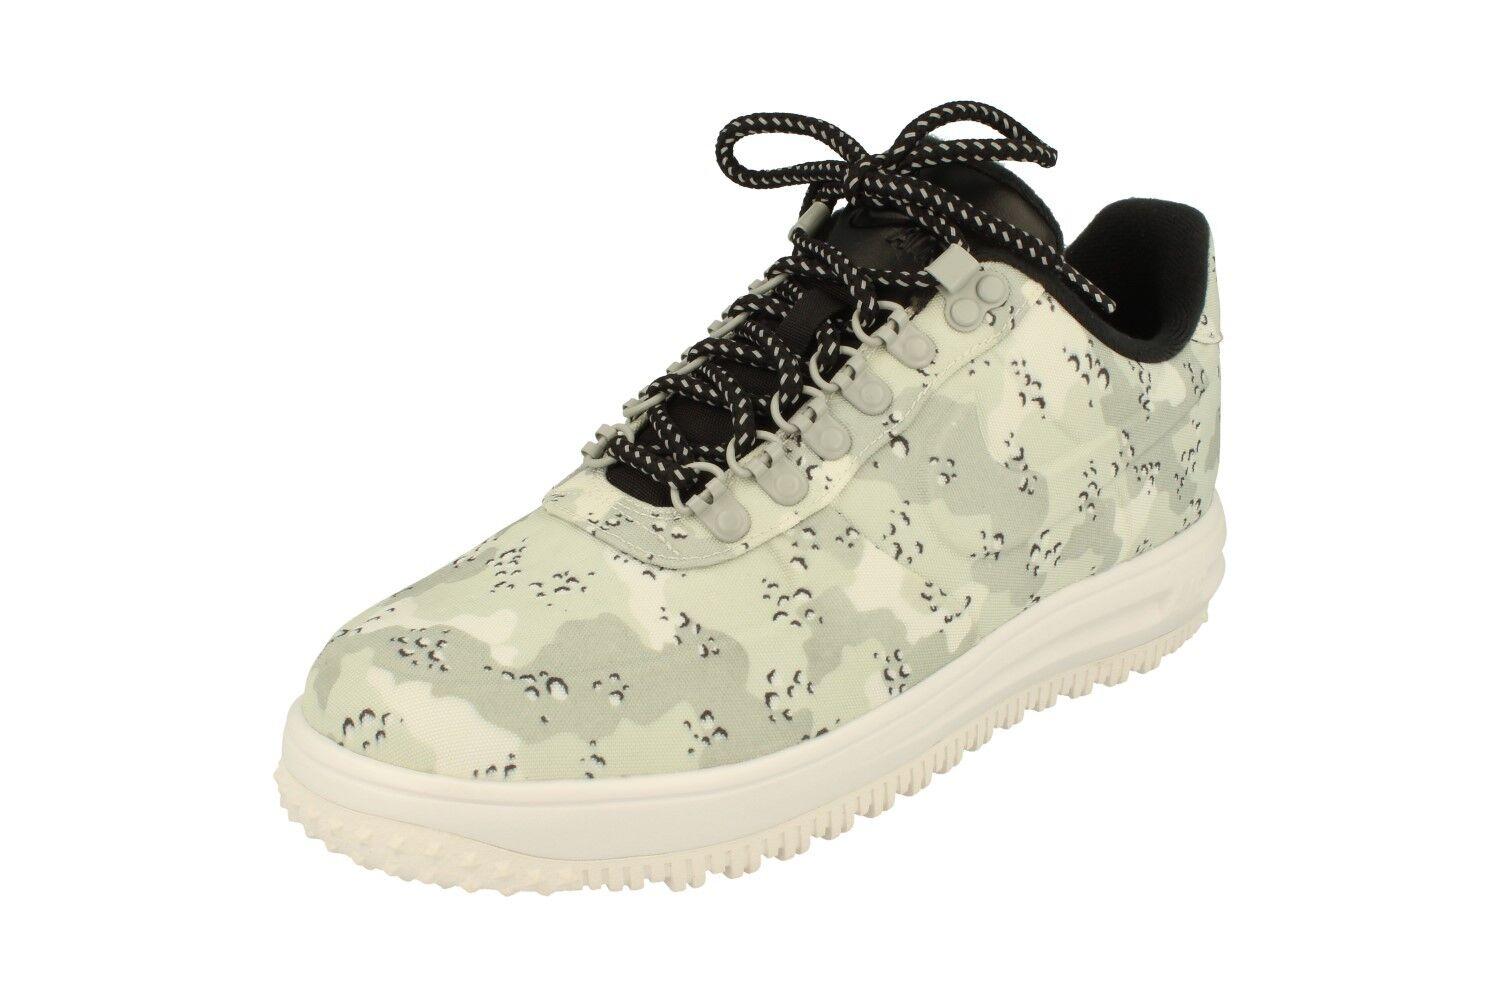 Nike Trainers Lf1 Duckboot faible homme Trainers Nike Aa1125 Baskets chaussures 003 2431f7